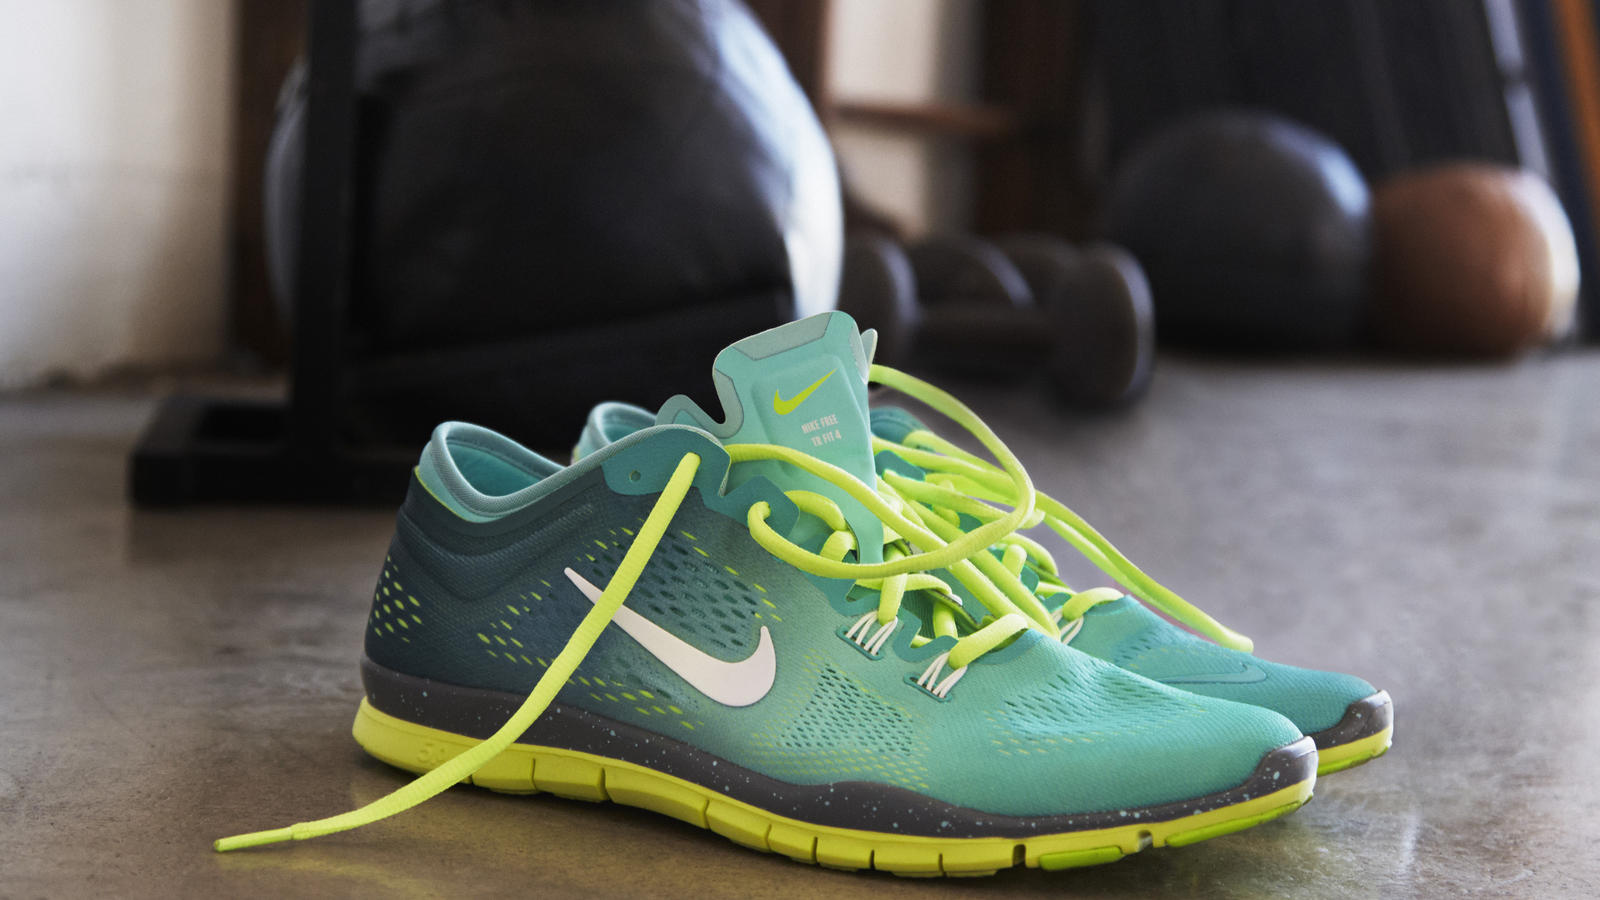 d4a9ae7fd641 Performance Meets Personalization  The Nike Free TR 4 on NIKEiD ...